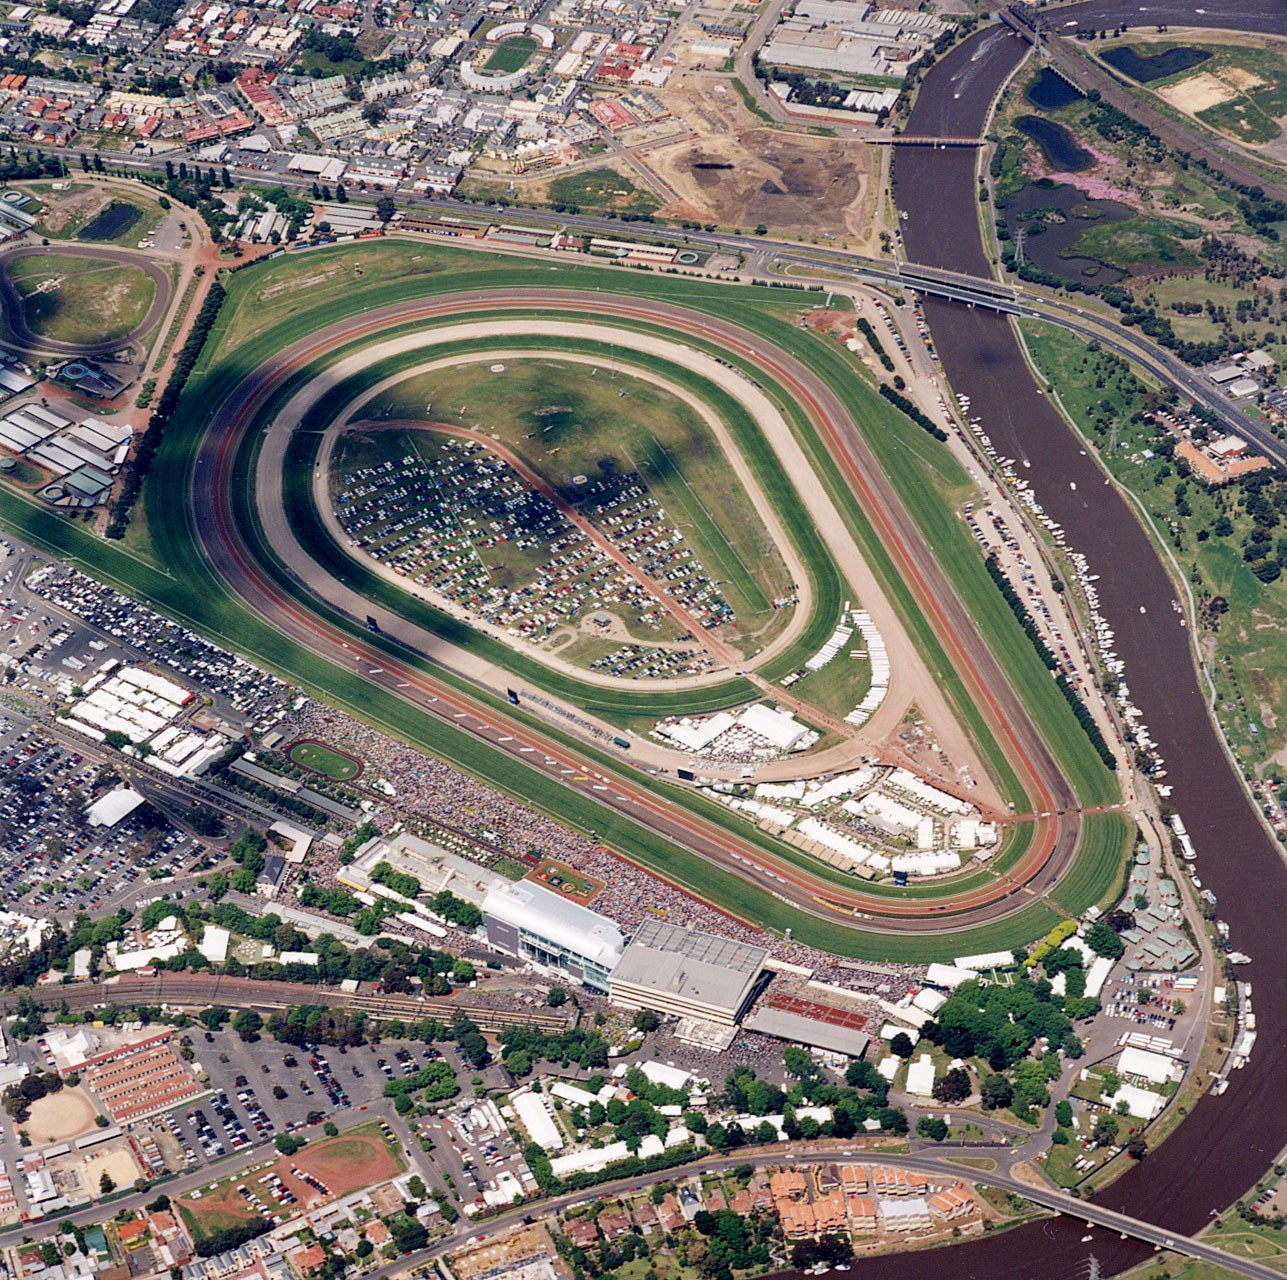 Flemington Racetrack